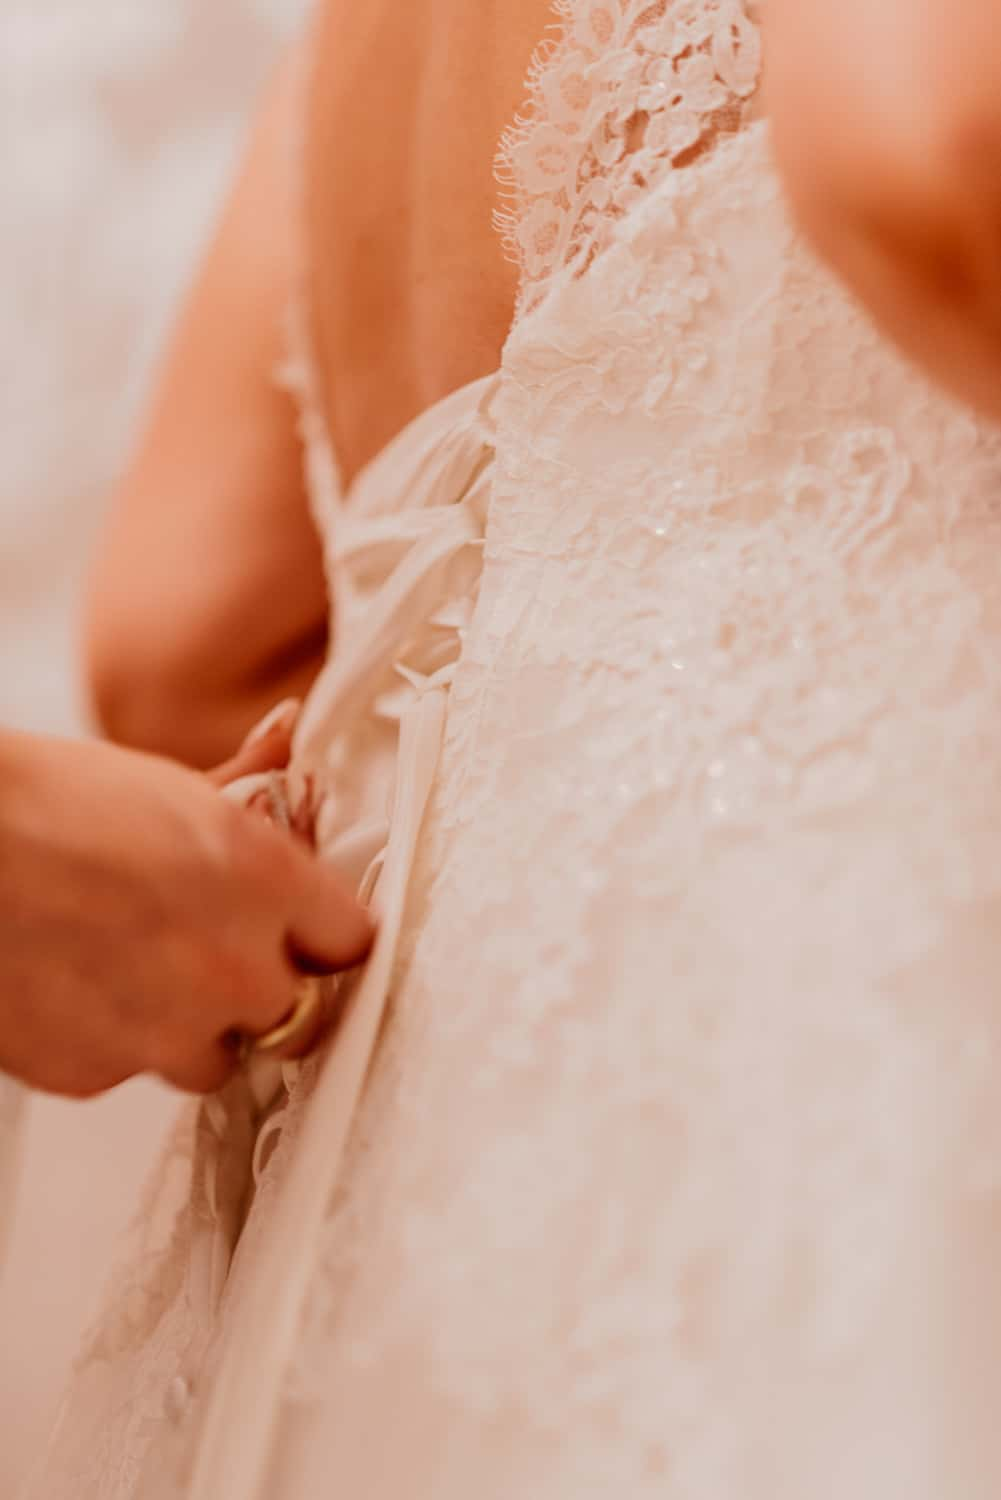 fastening the dress